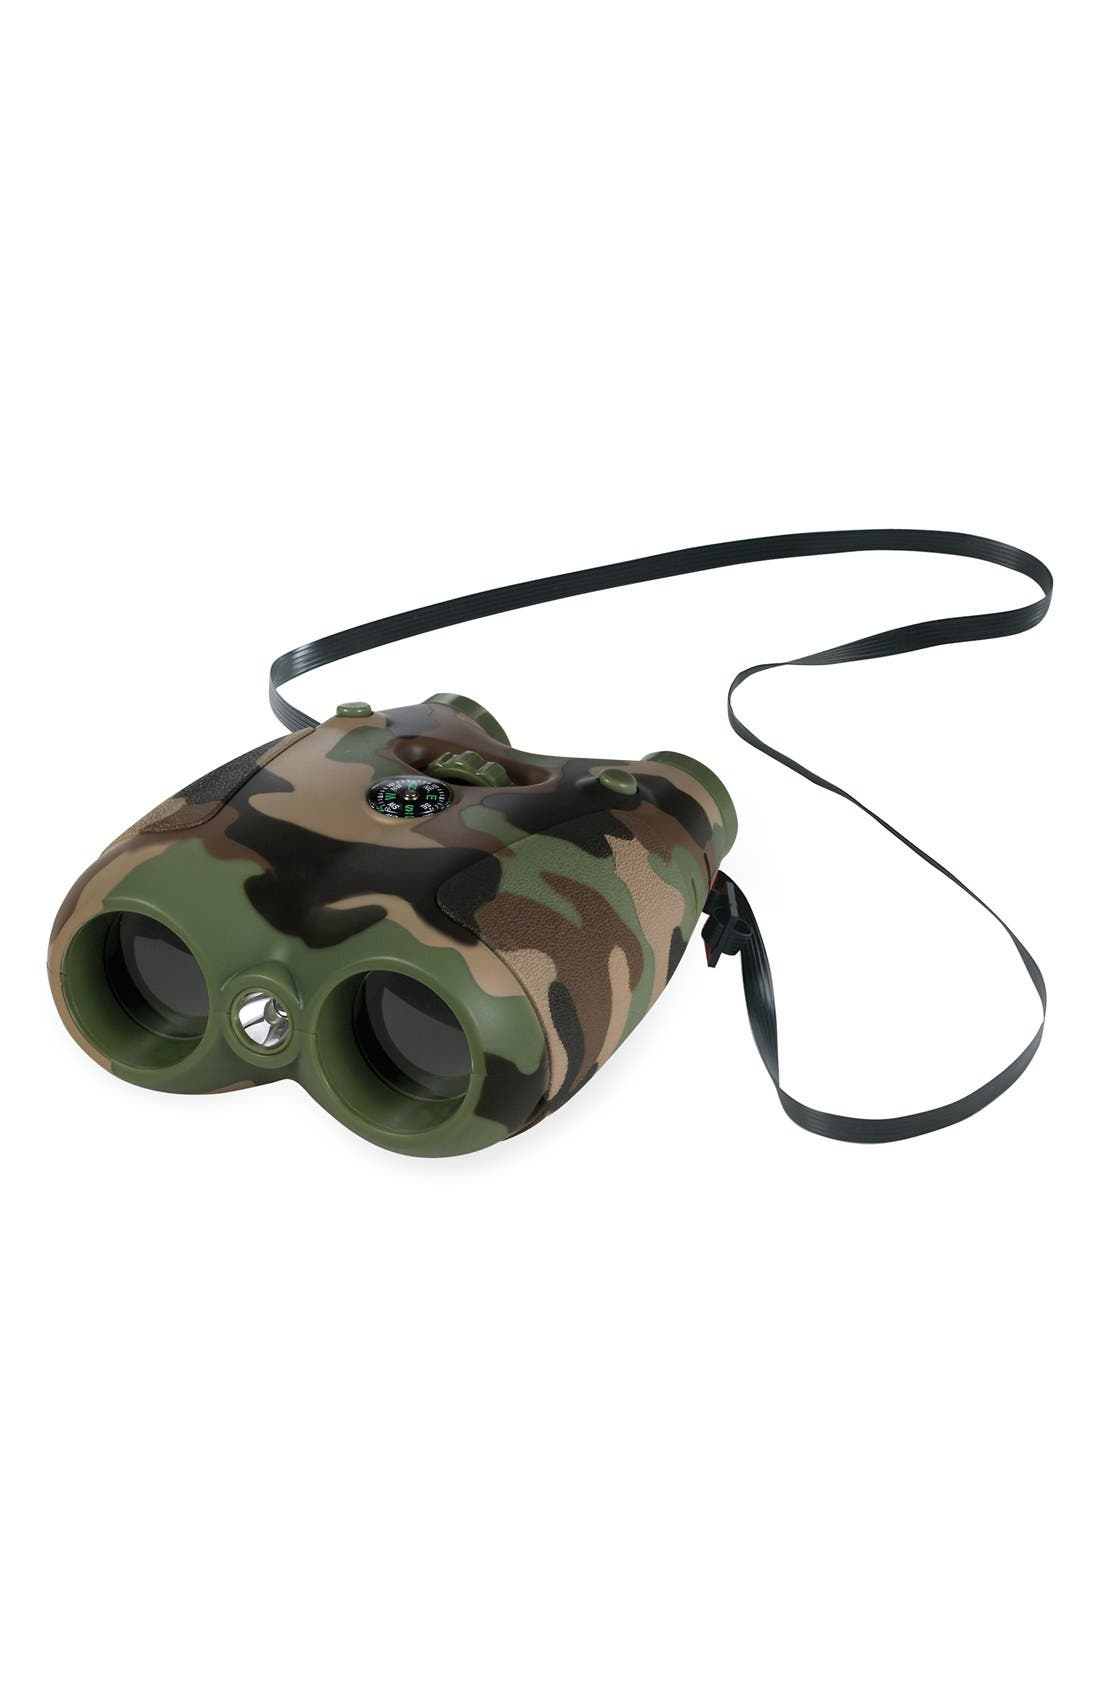 Safari Ltd. Camouflage Binoculars